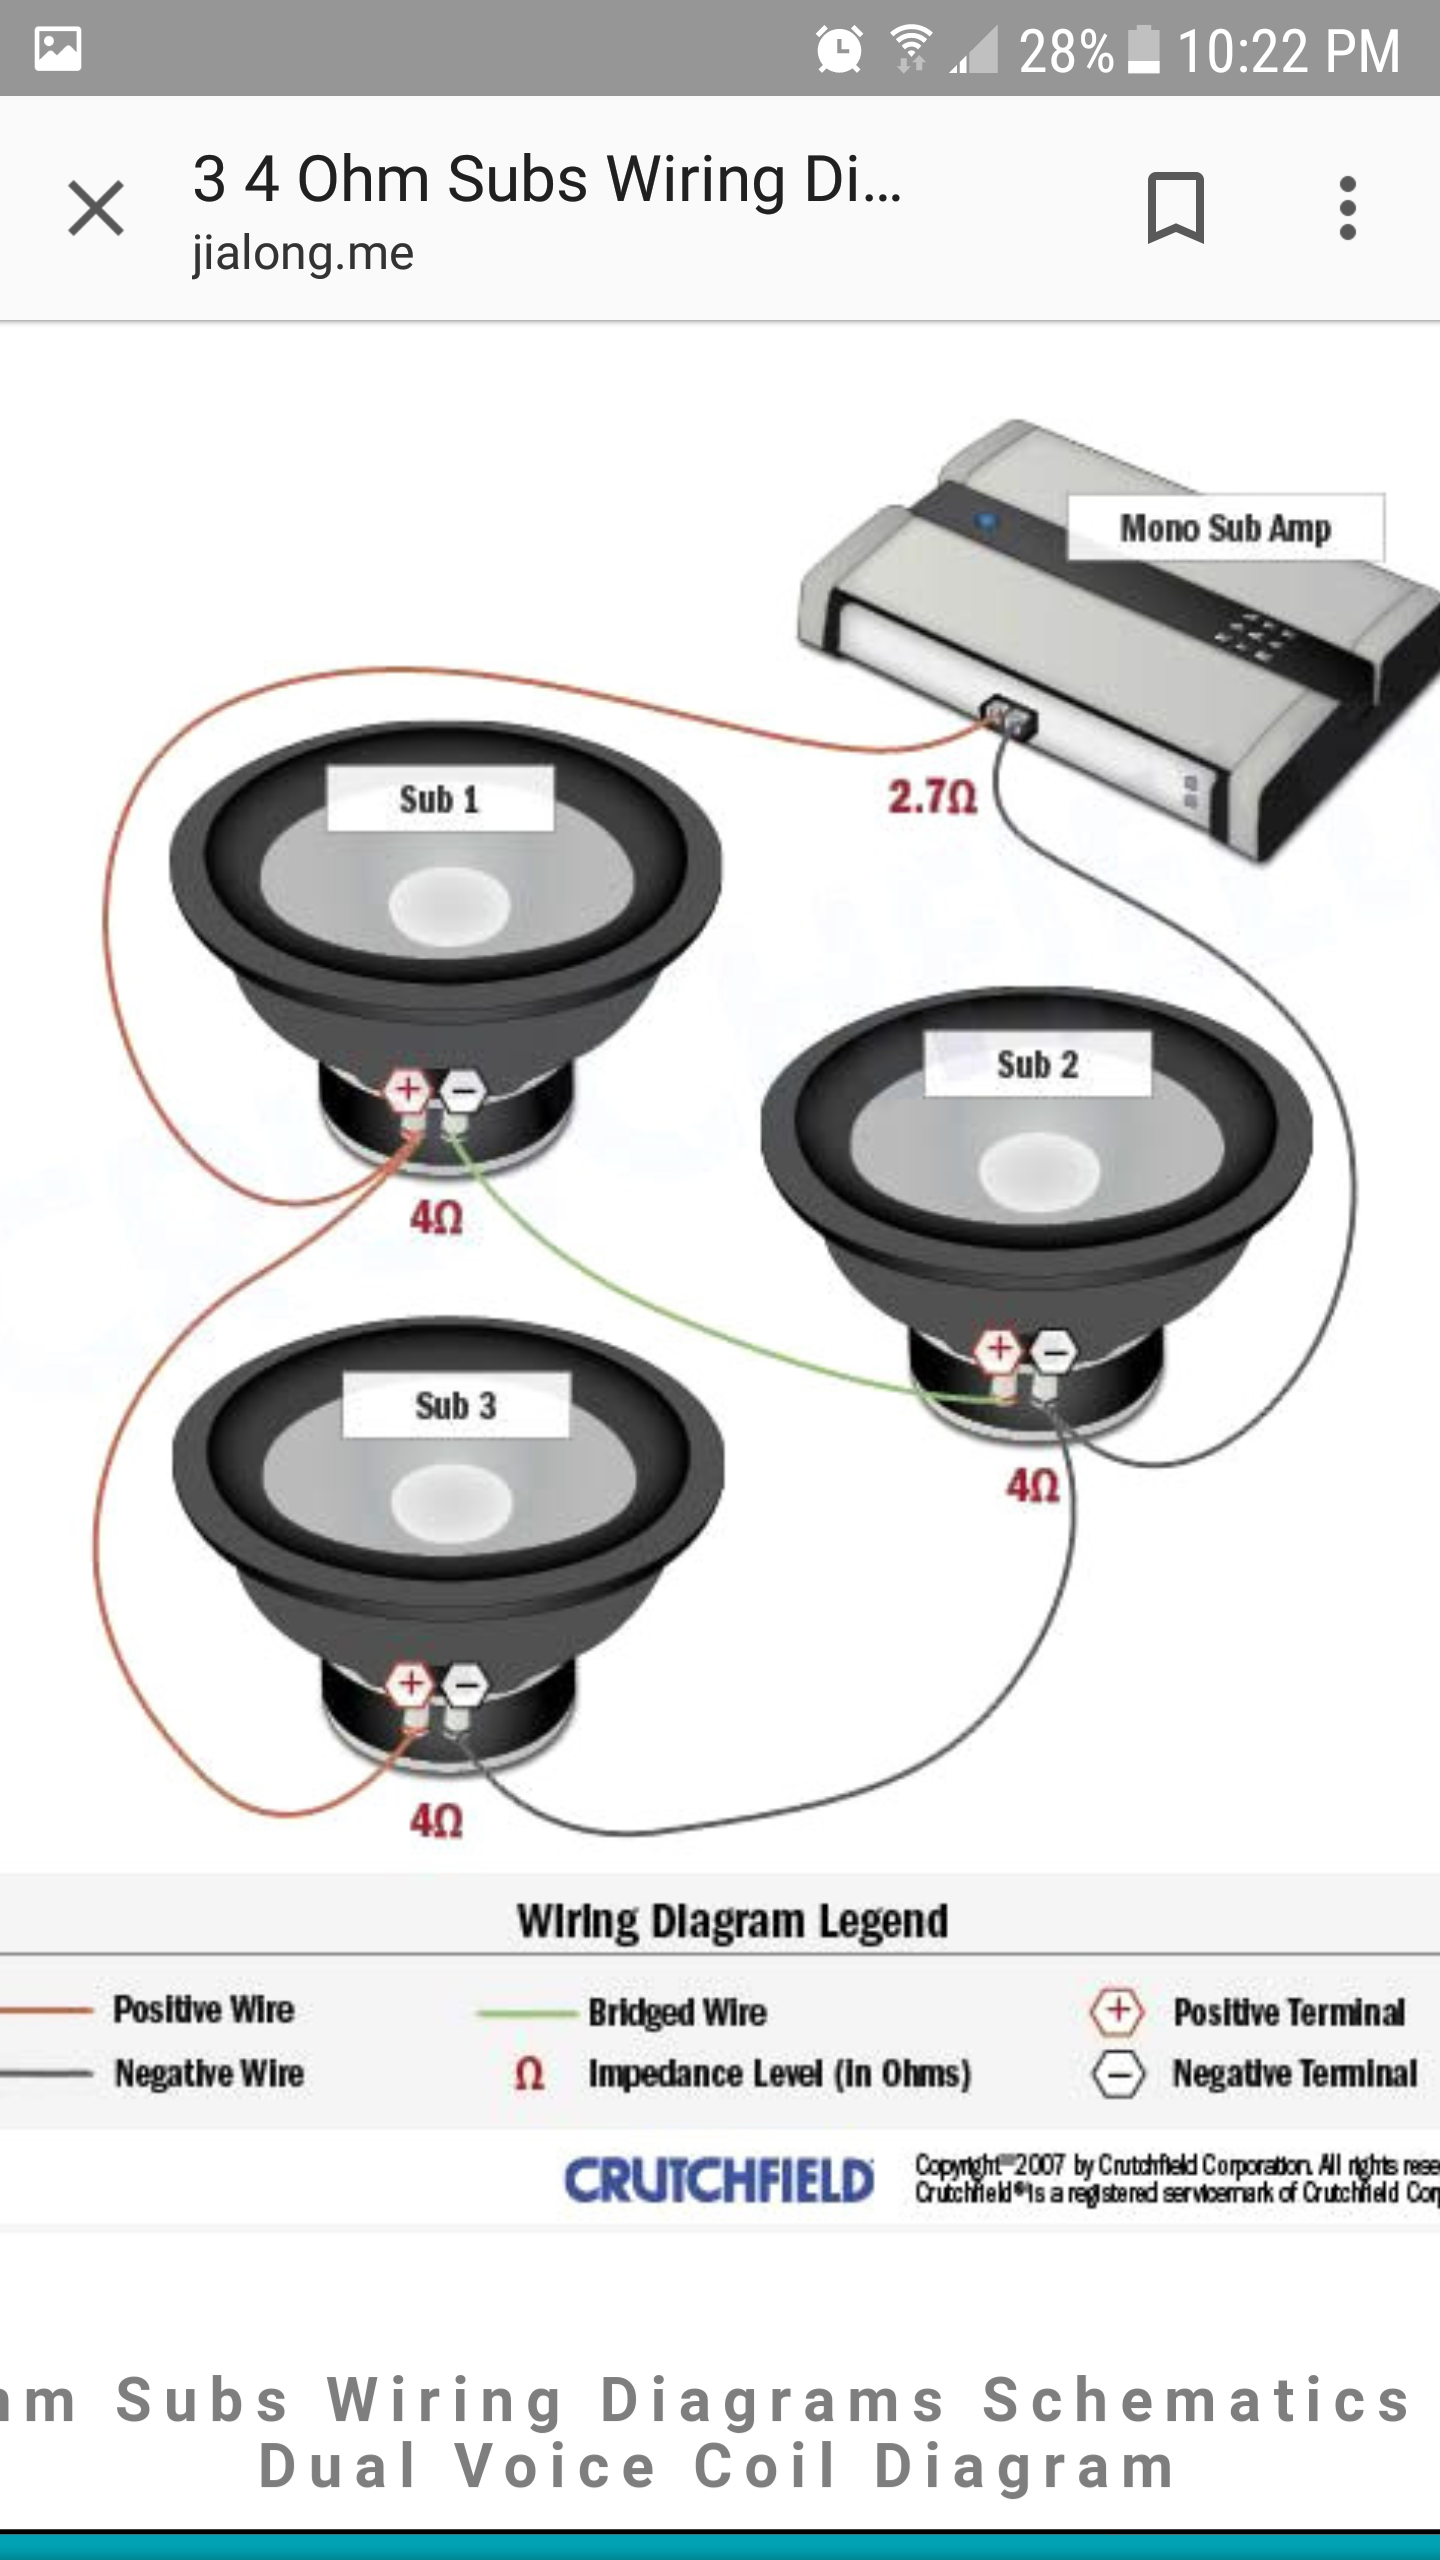 ☑ 1 Ohm Wiring Subwoofer Diagrams 3 Subs HD Quality ☑ list-diagram .lesflaneurs.itDiagram Database